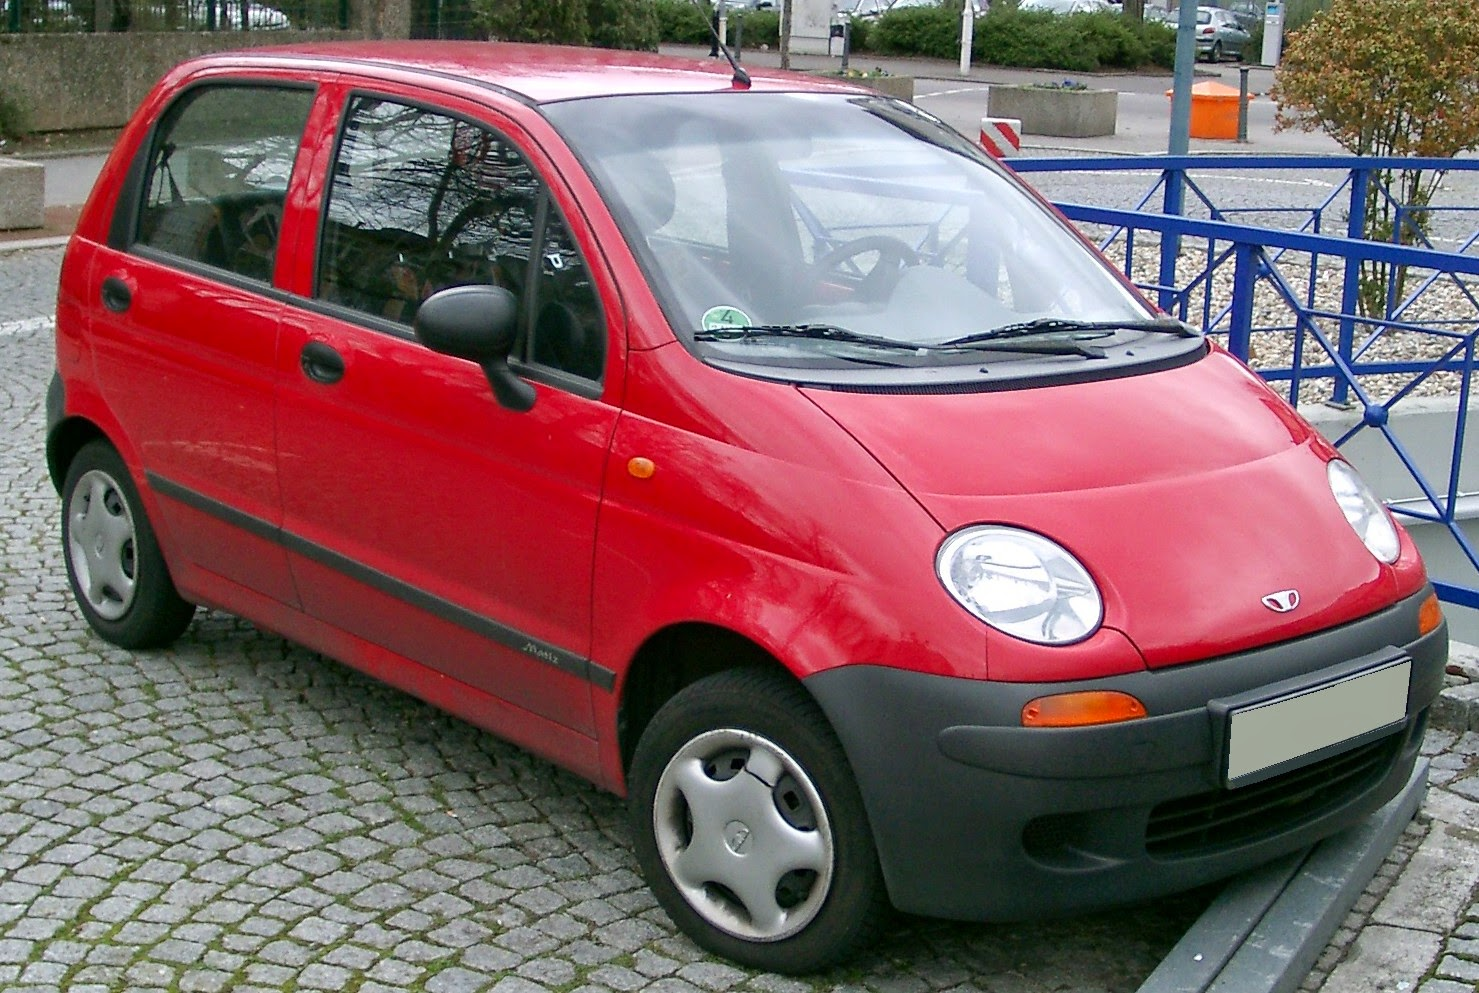 Life On Cars: Why I nearly ended up buying a Daewoo Matiz